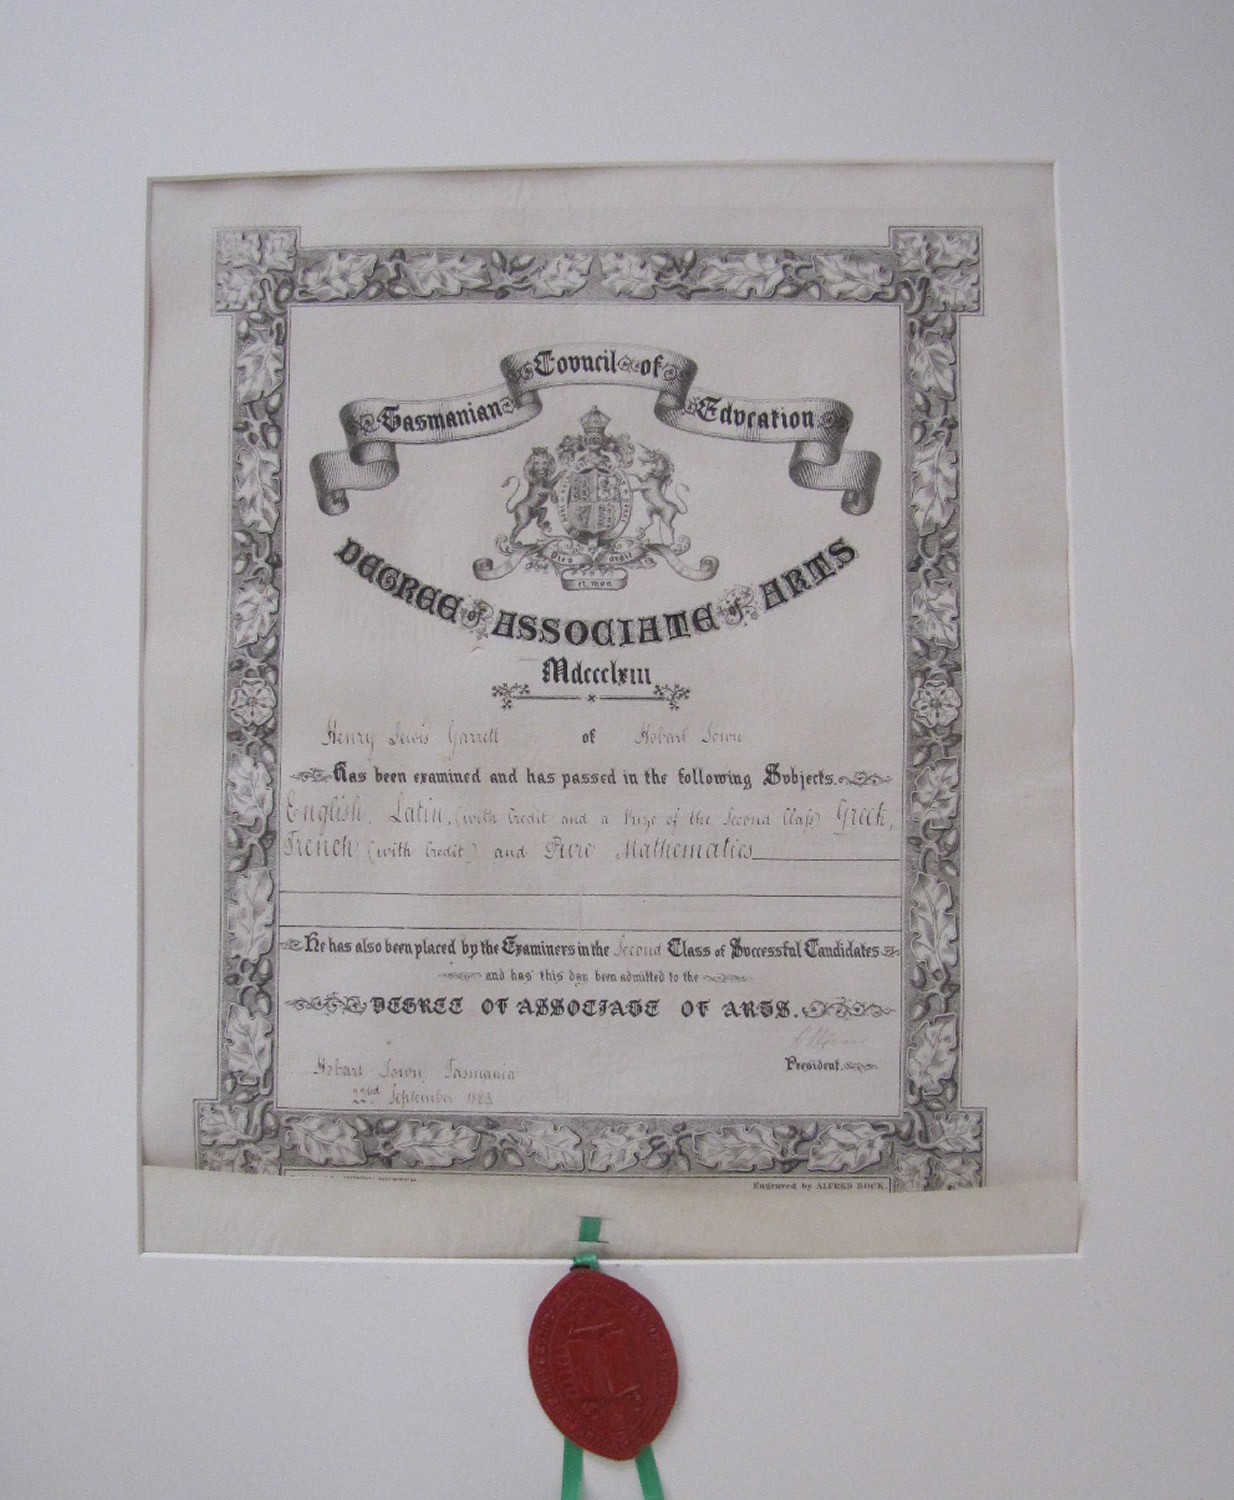 Degree of Associate of Arts certificate conferred by the Tasmanian Council of Education in Hobart Town 1863